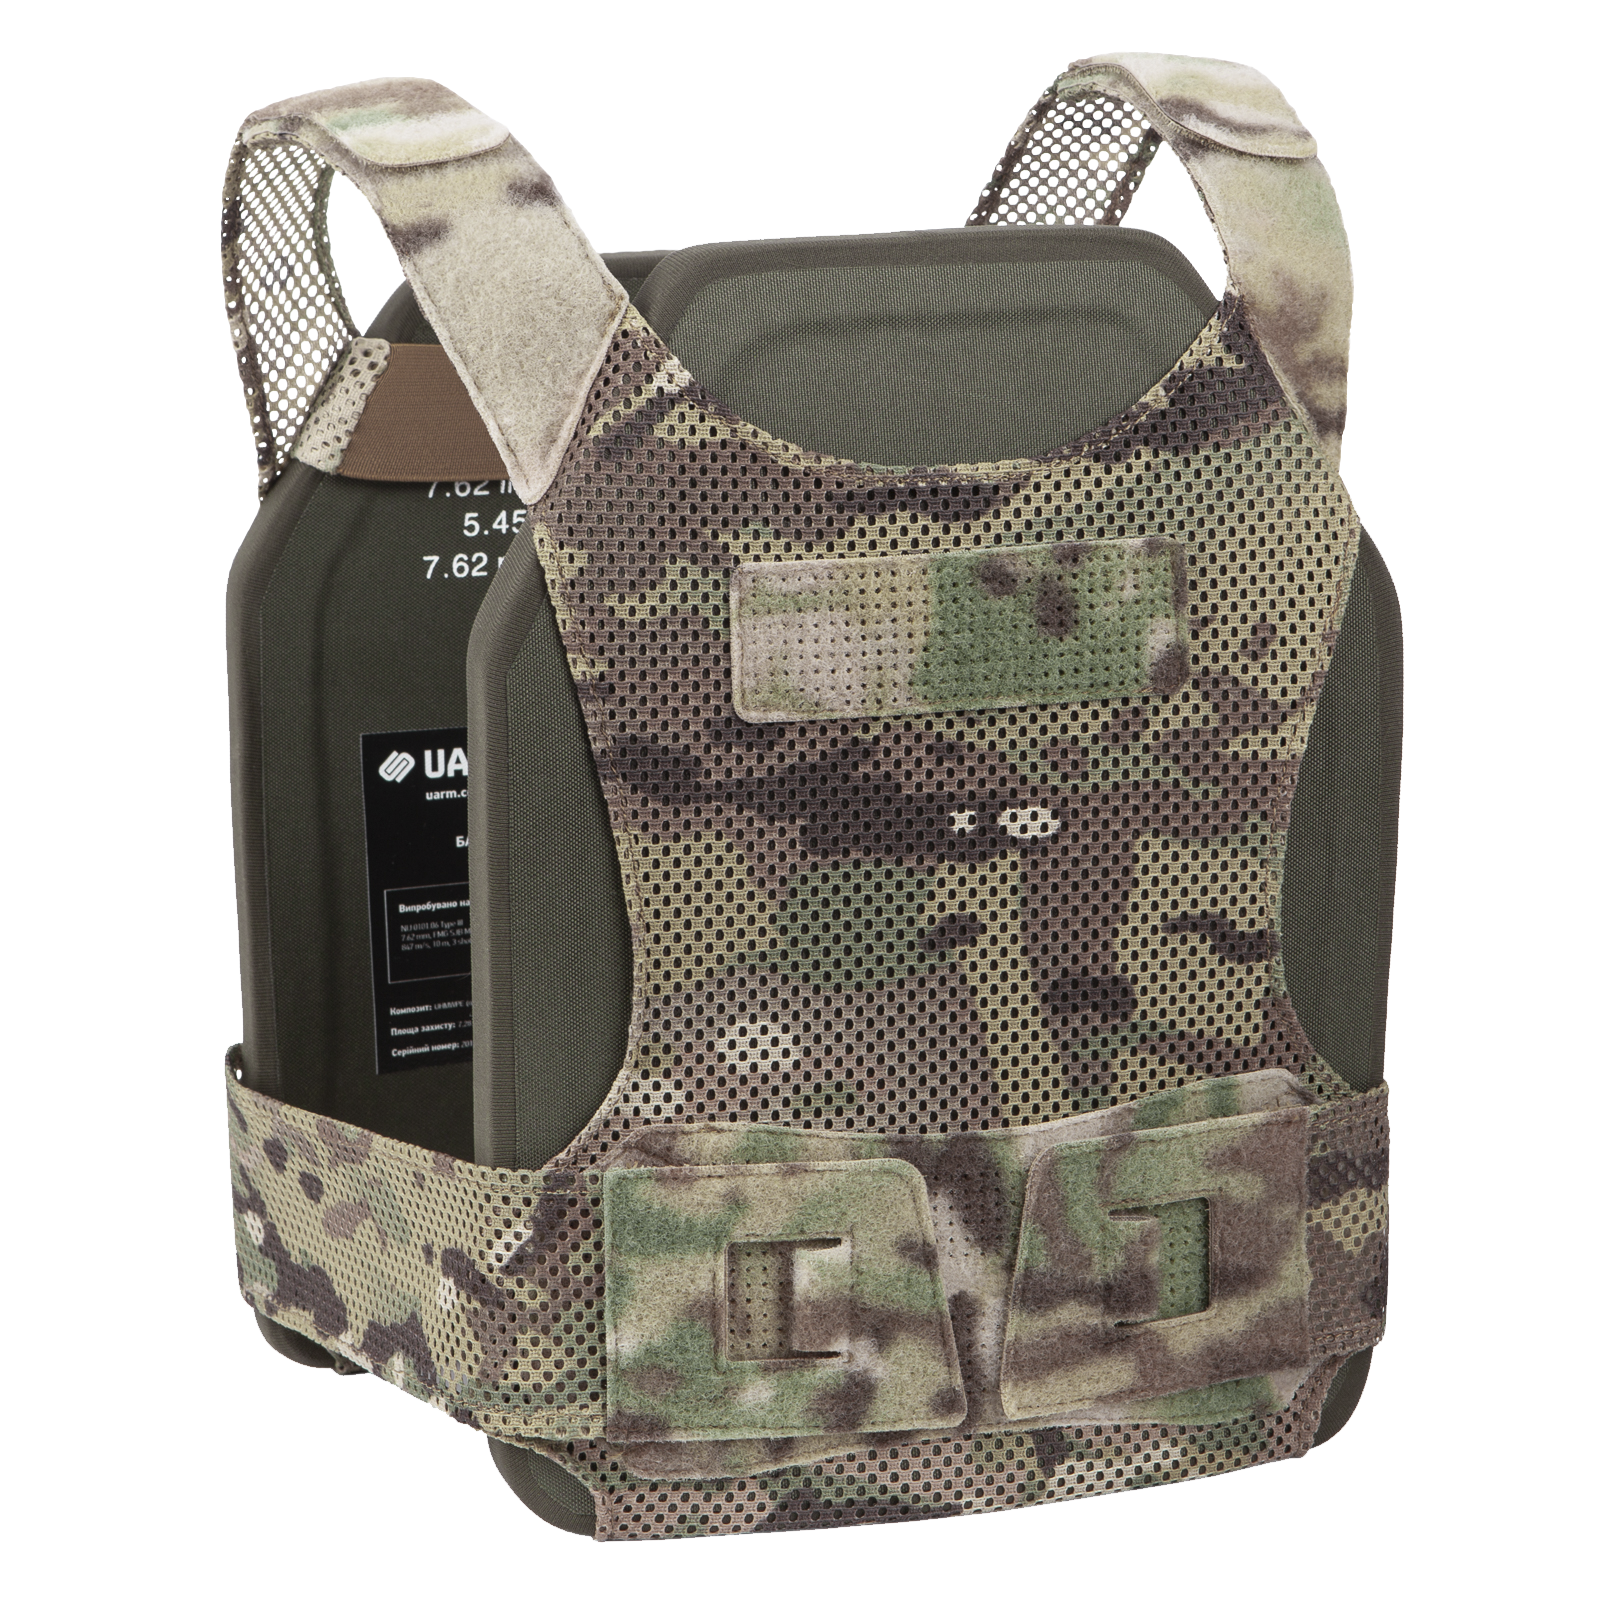 WCCA™ Weightless Clavicle Carrier Assistance